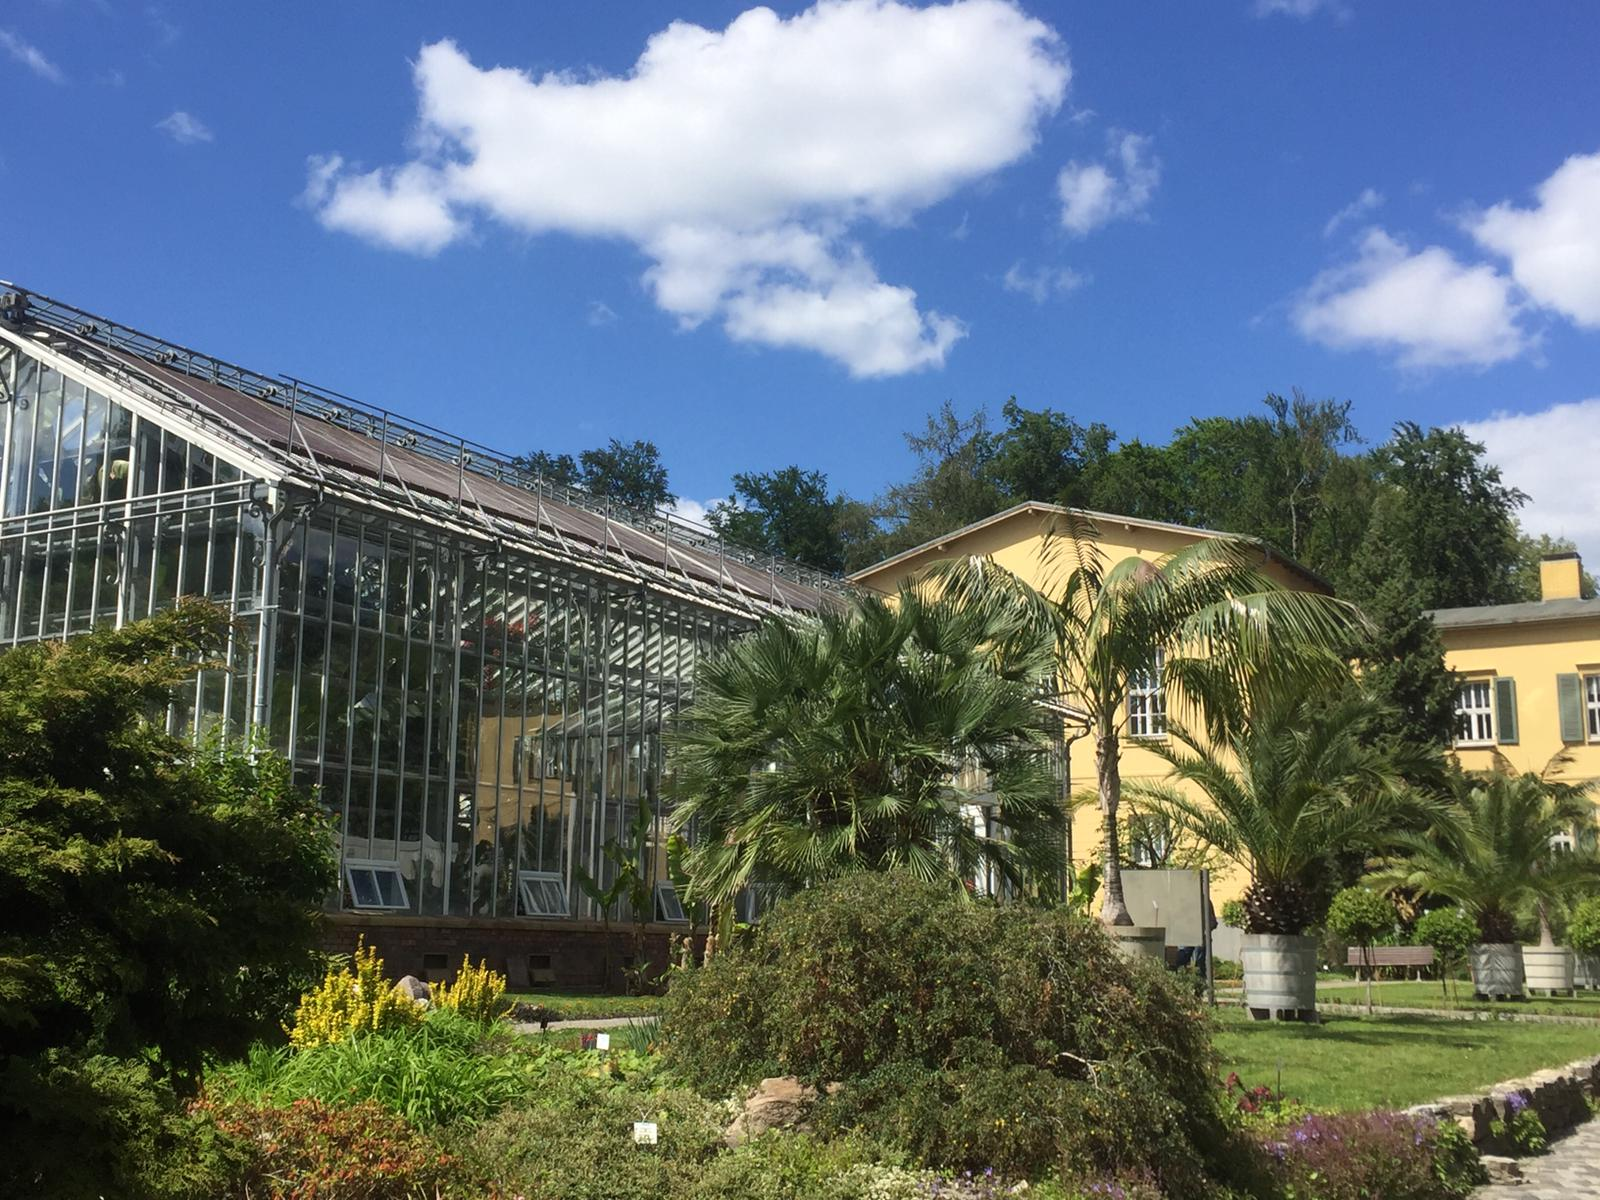 (Post-)Colonialism and the Botanical Gardens at Potsdam